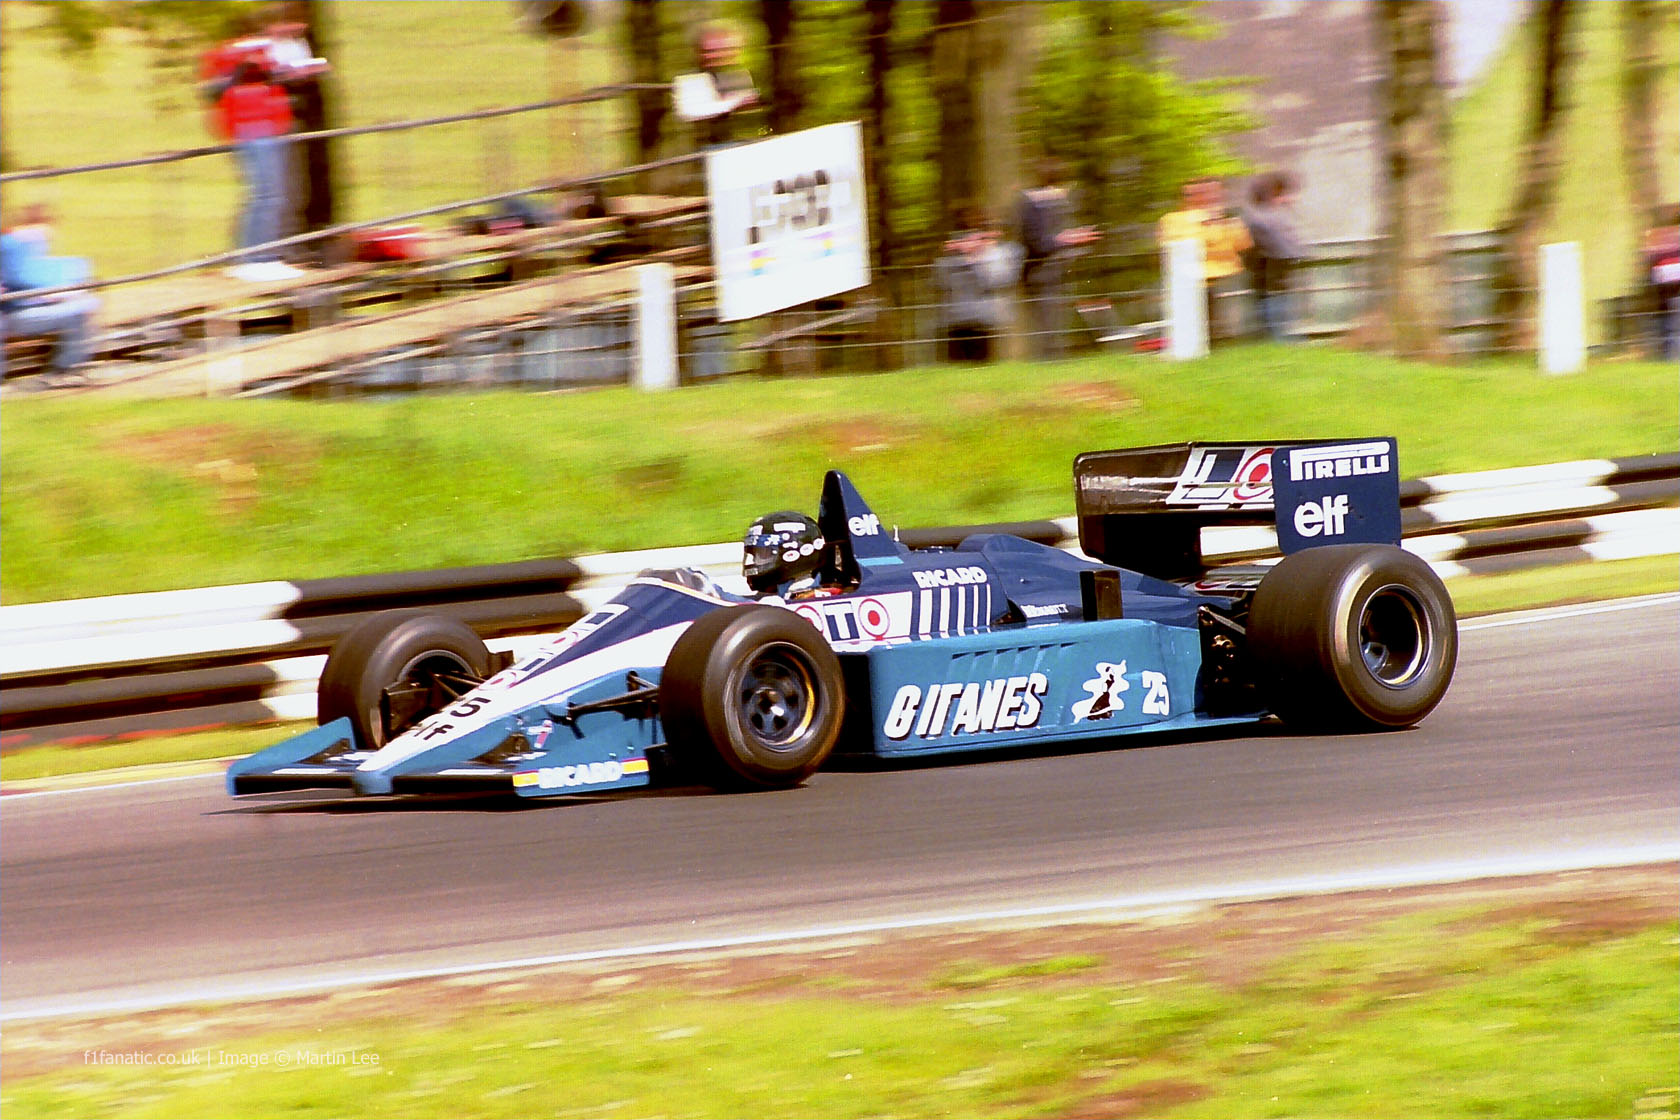 Jacques Laffite, Ligier, Brands Hatch, 1986